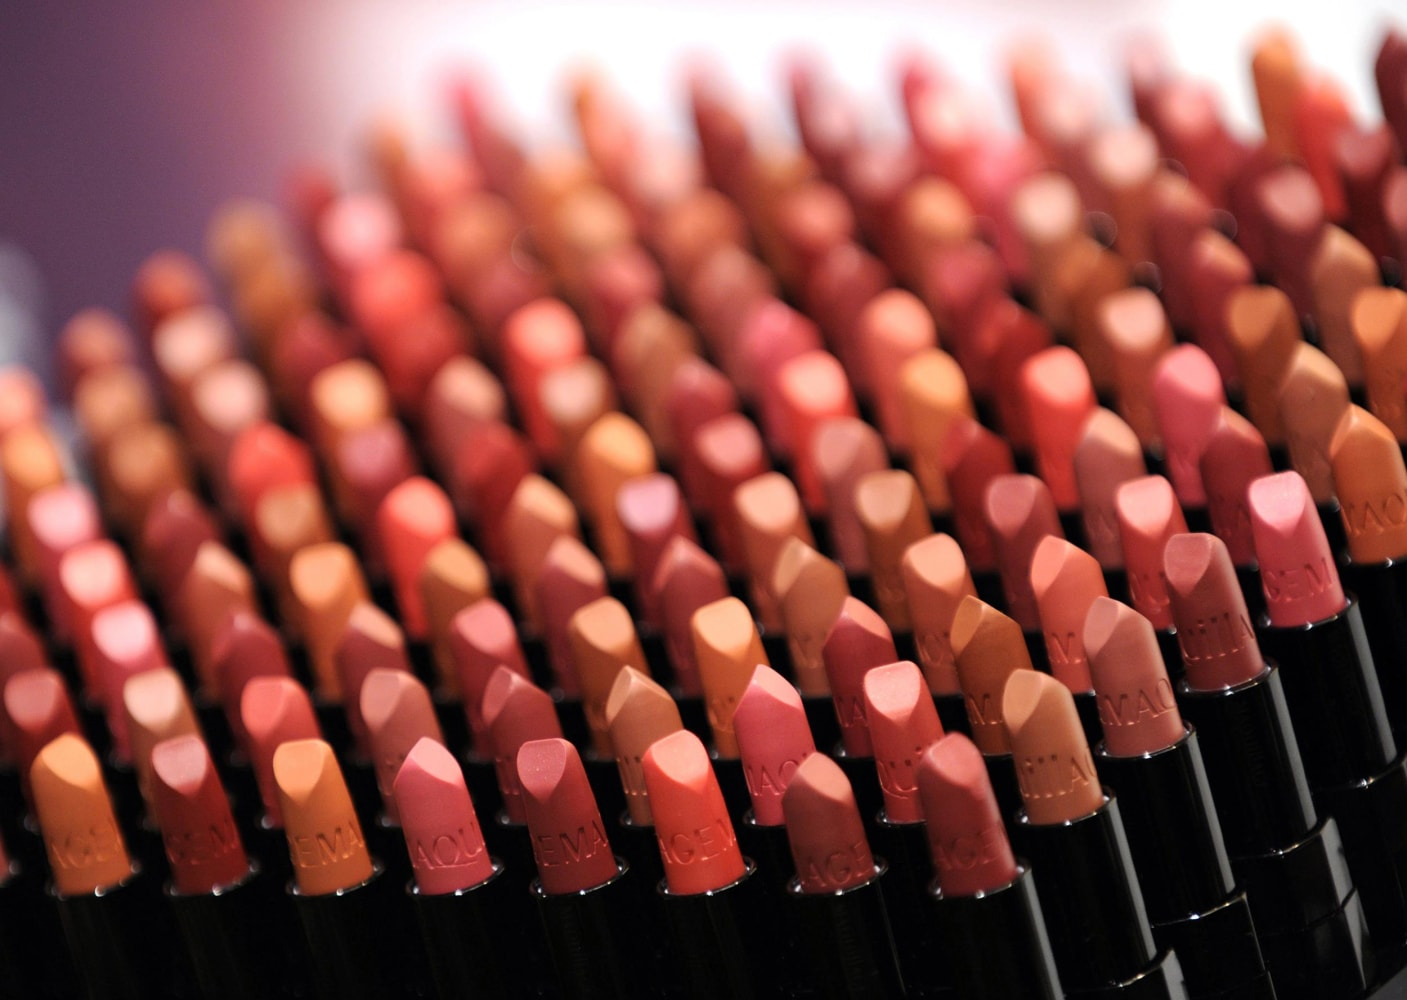 Feds look to reduce lead levels in lipstick